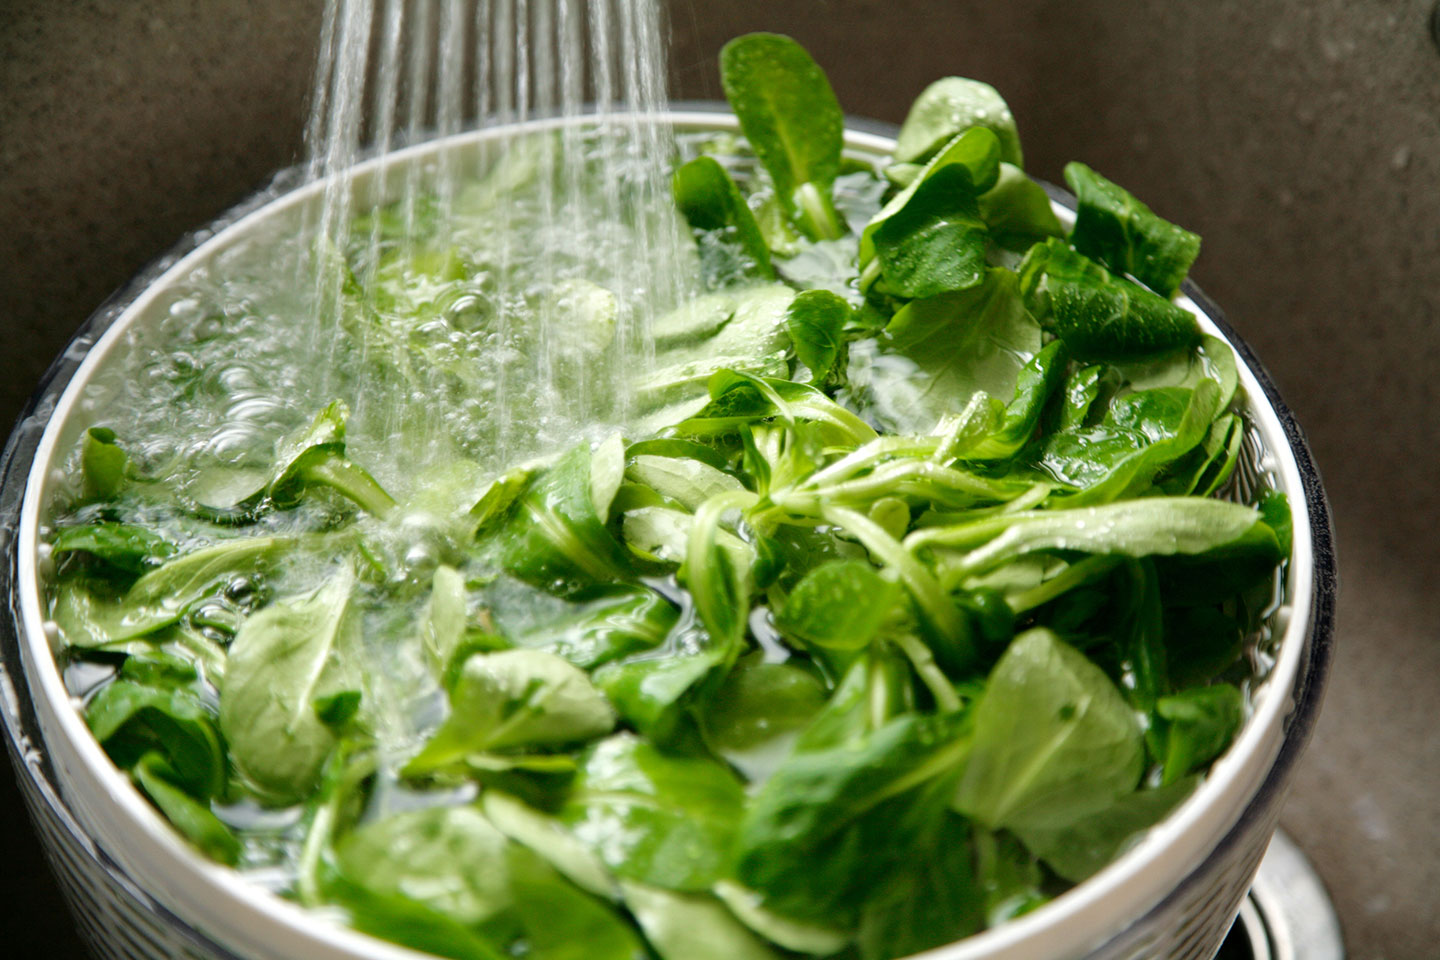 lettuce in a bowl of ice water